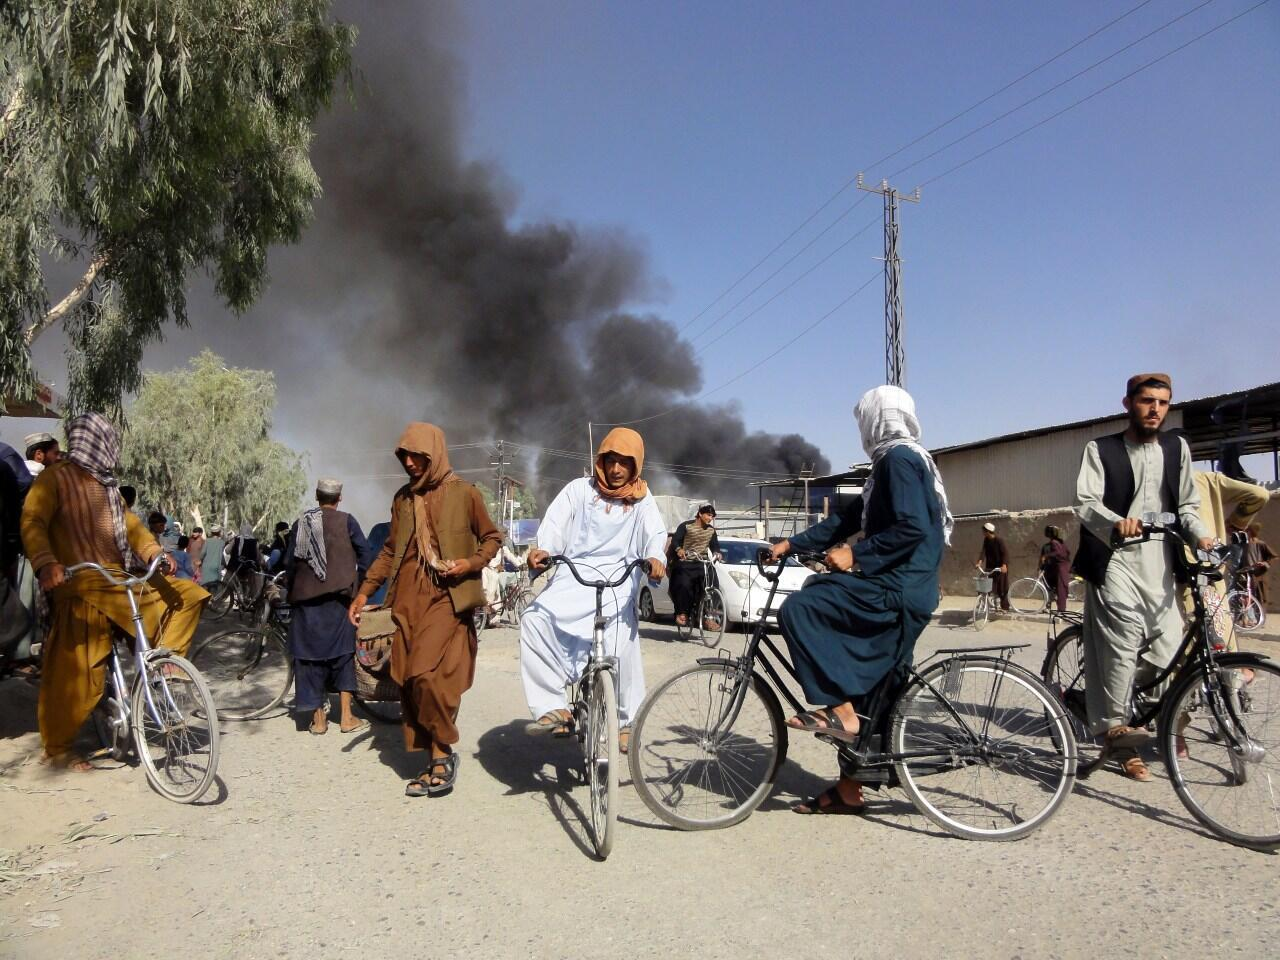 Smoke rises after clashes between the Taliban and Afghan security personnel, in Kandahar, southwest of Kabul in Afghanistan, on August 12, 2021.